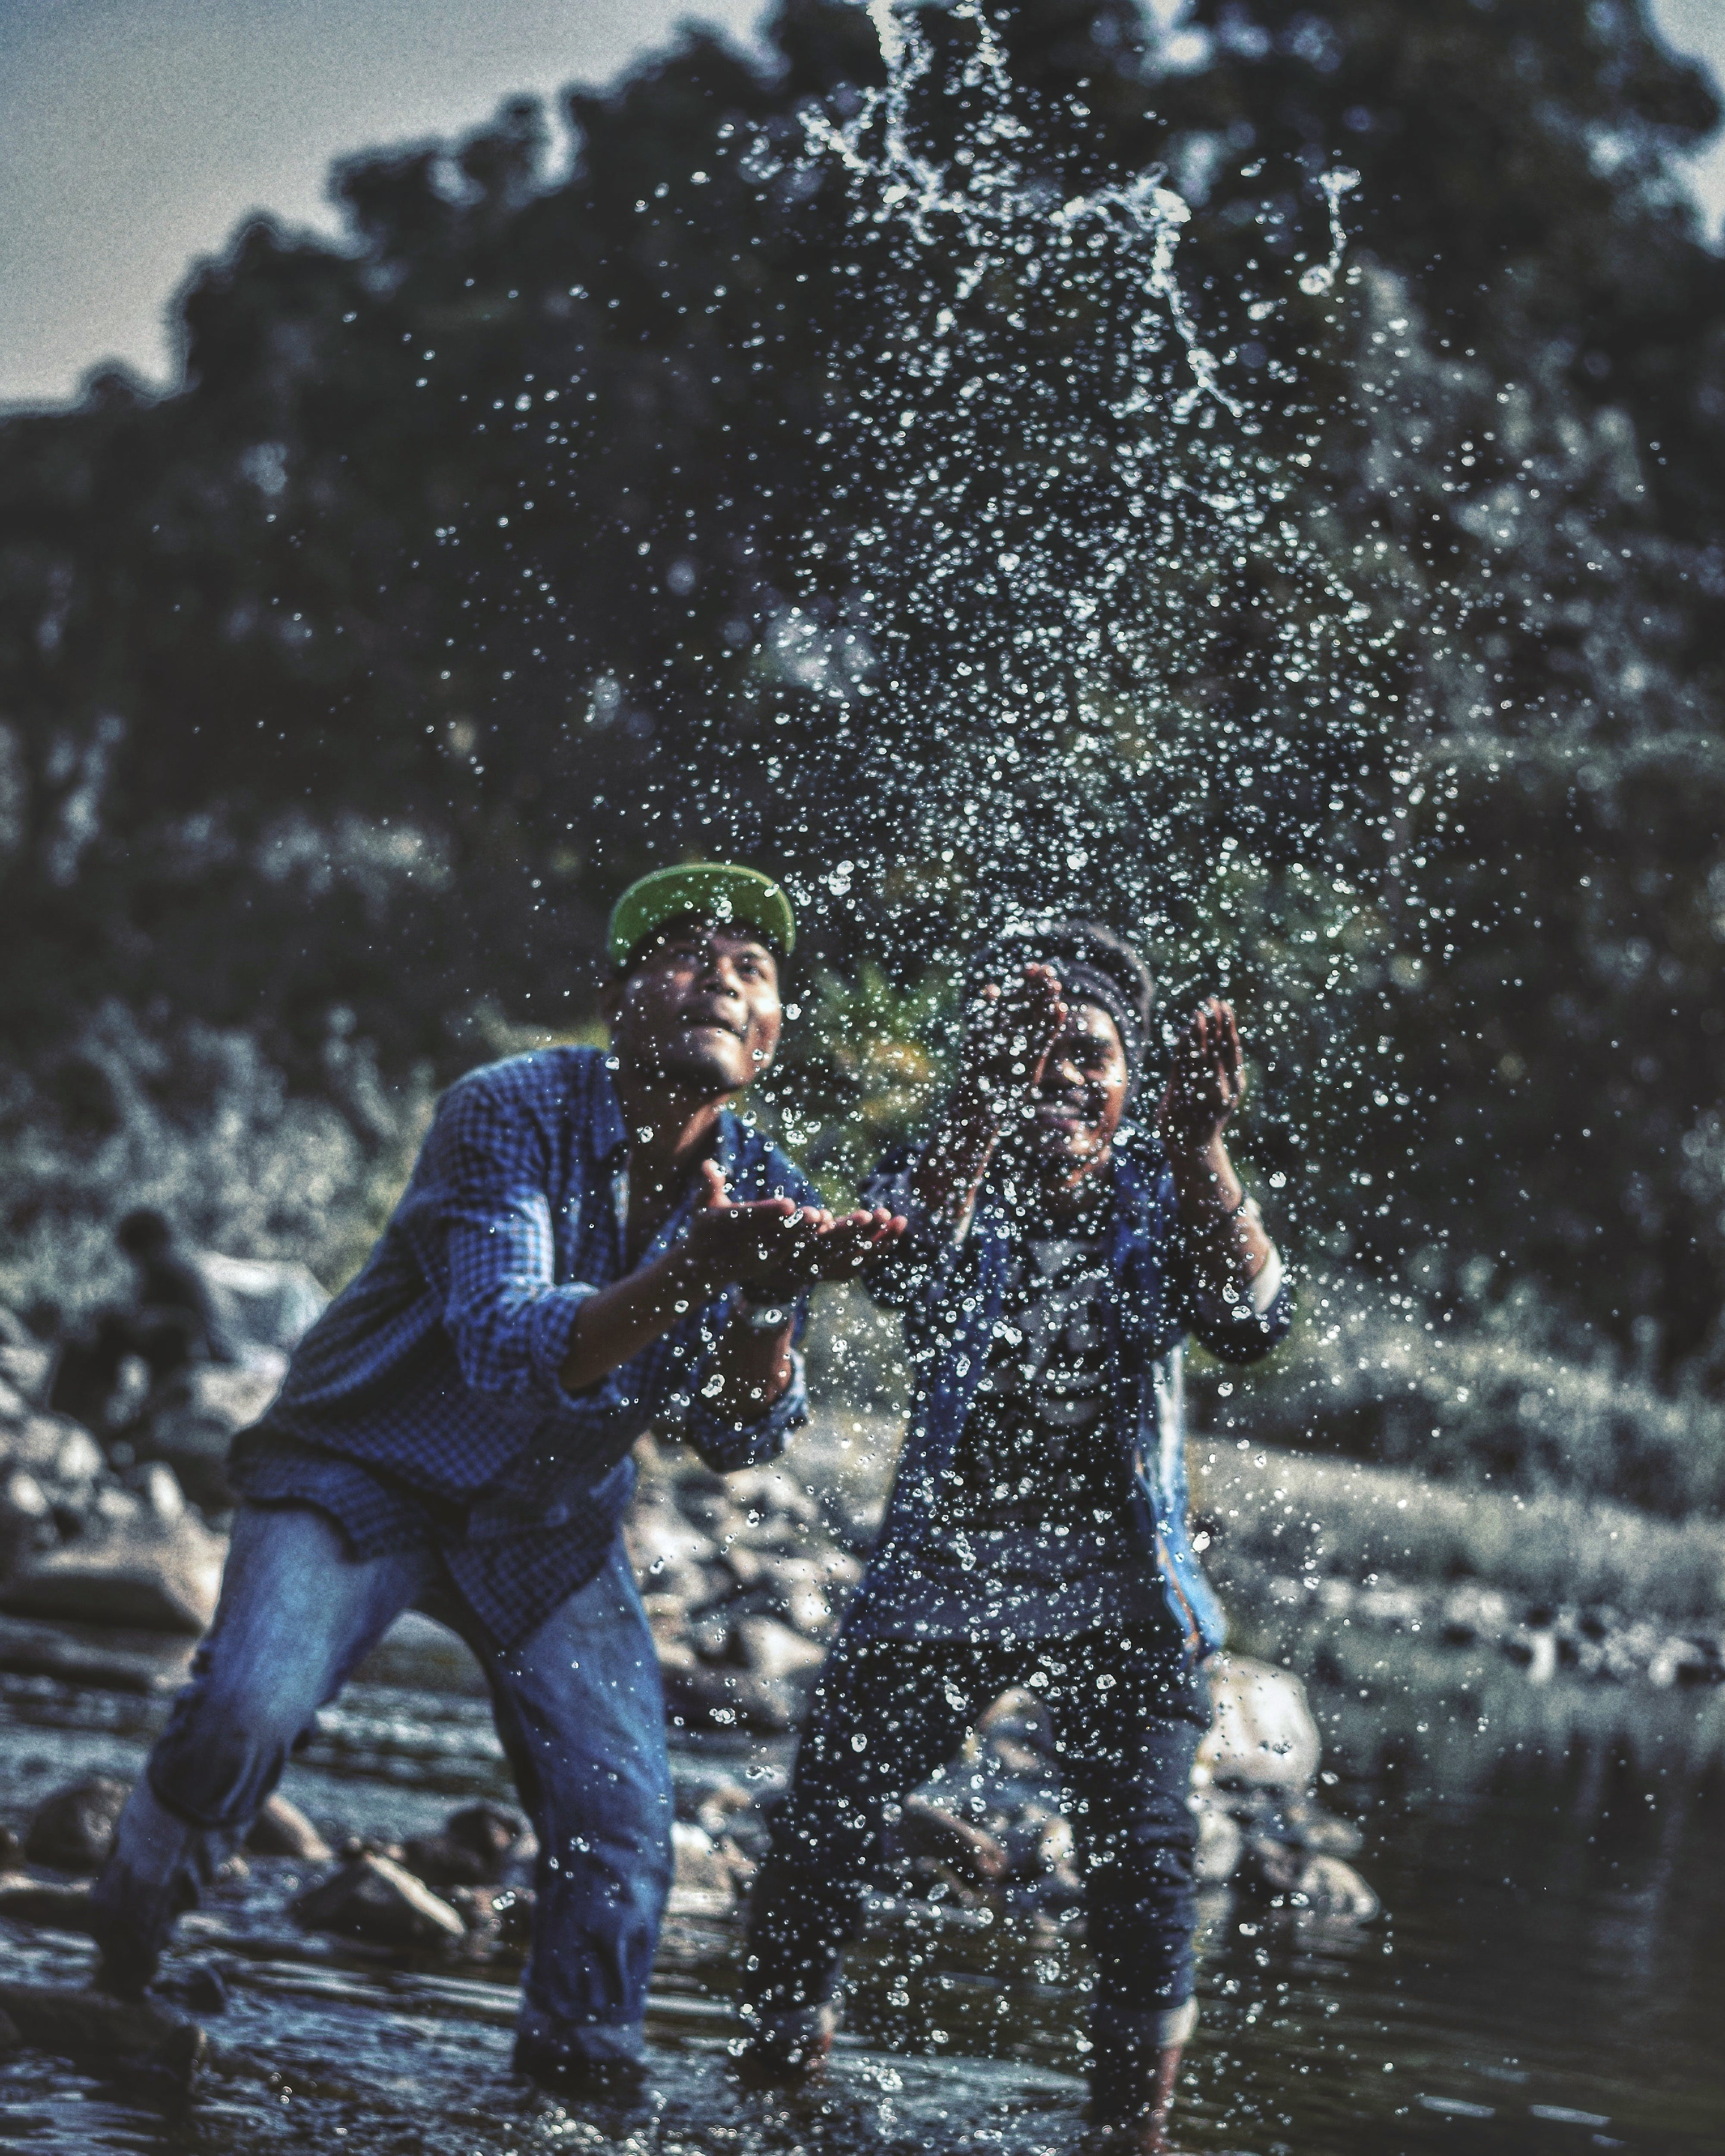 Two Men Playing With Water in Lake